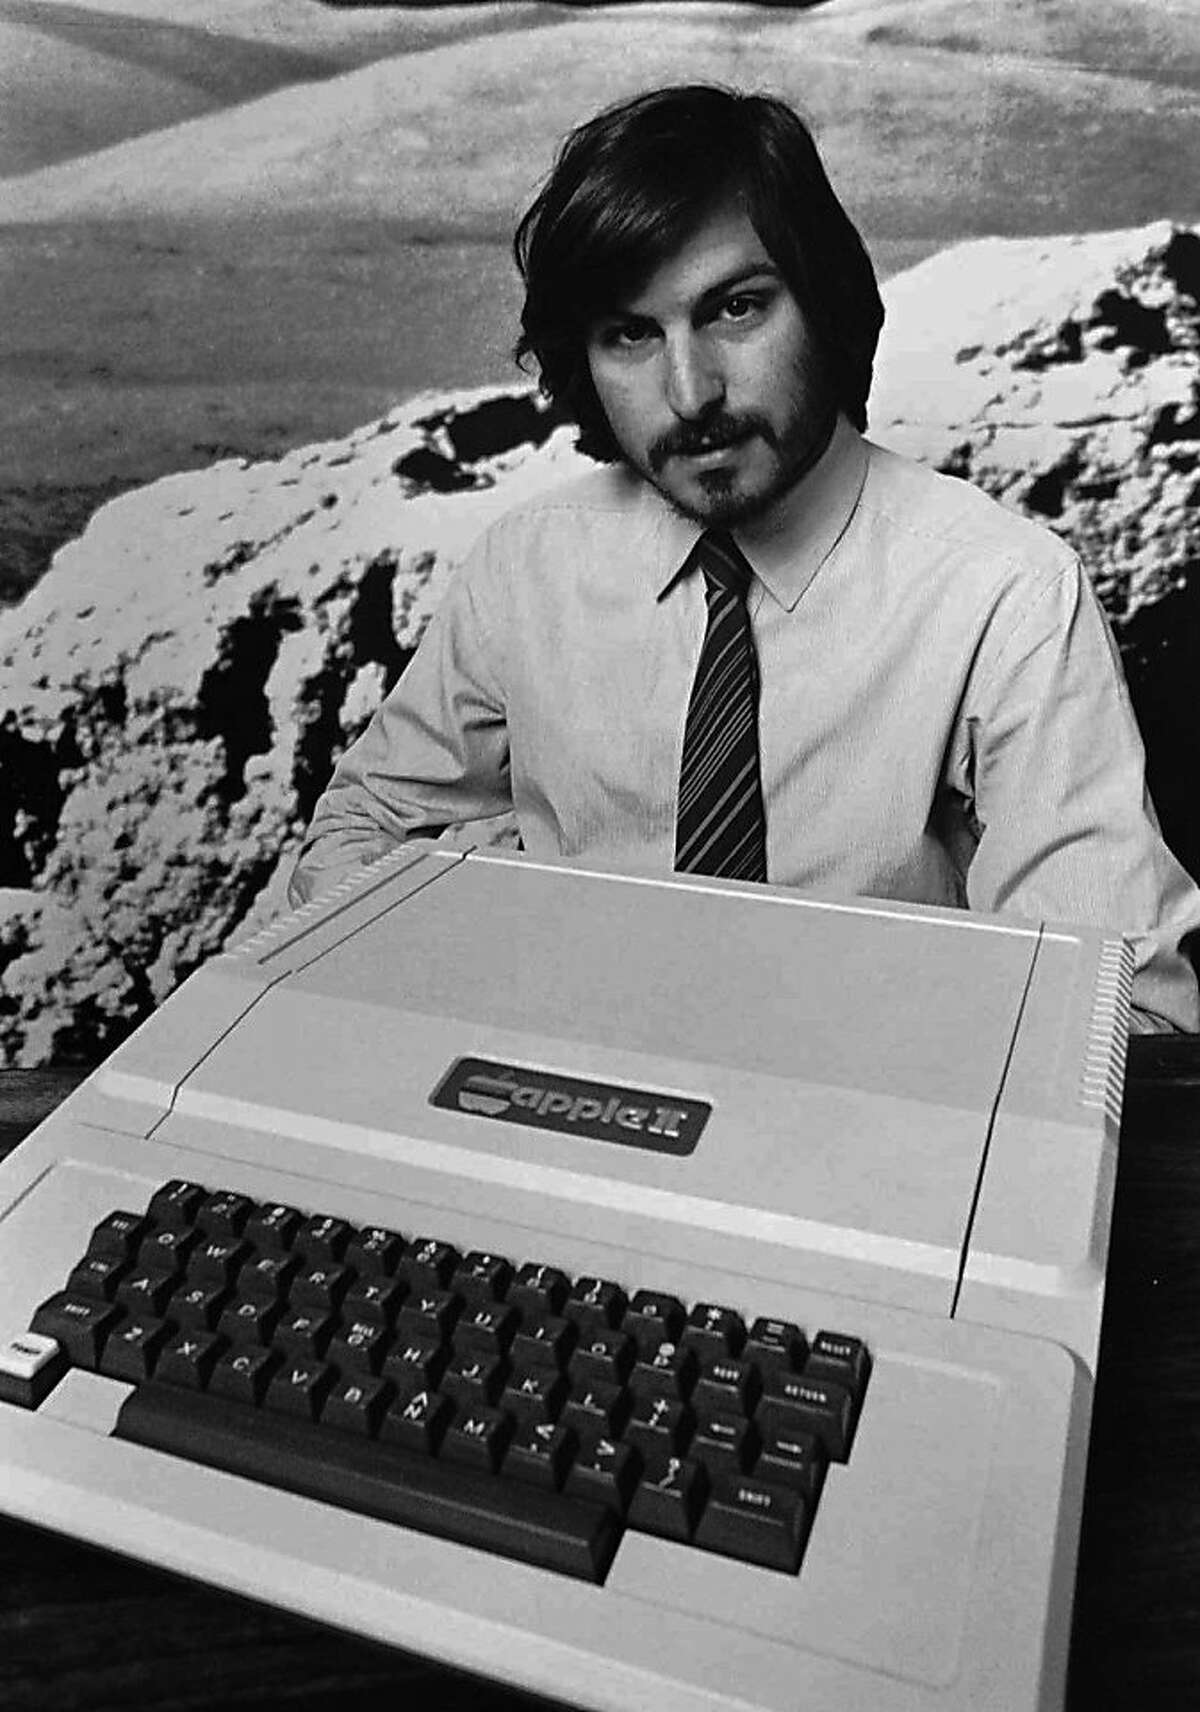 This is a 1977 photo of Apple Computer Inc. founder Steve Jobs as he introduces the new Apple II in Cupertino, Calif. Apple Computer was formed 20 years ago, on April Fool's Day in 1976. This is a 1977 photo of Apple Computer Inc. founder Steve Jobs as he introduces the new Apple II in Cupertino, Calif. Apple Computer was formed 20 years ago, on April Fool's Day in 1976. (AP Photo/Apple Computers Inc., file) Ran on: 01-09-2006 Ran on: 03-26-2006 Apple co-founder Steve Jobs introduces the new Apple II computer in Cupertino.